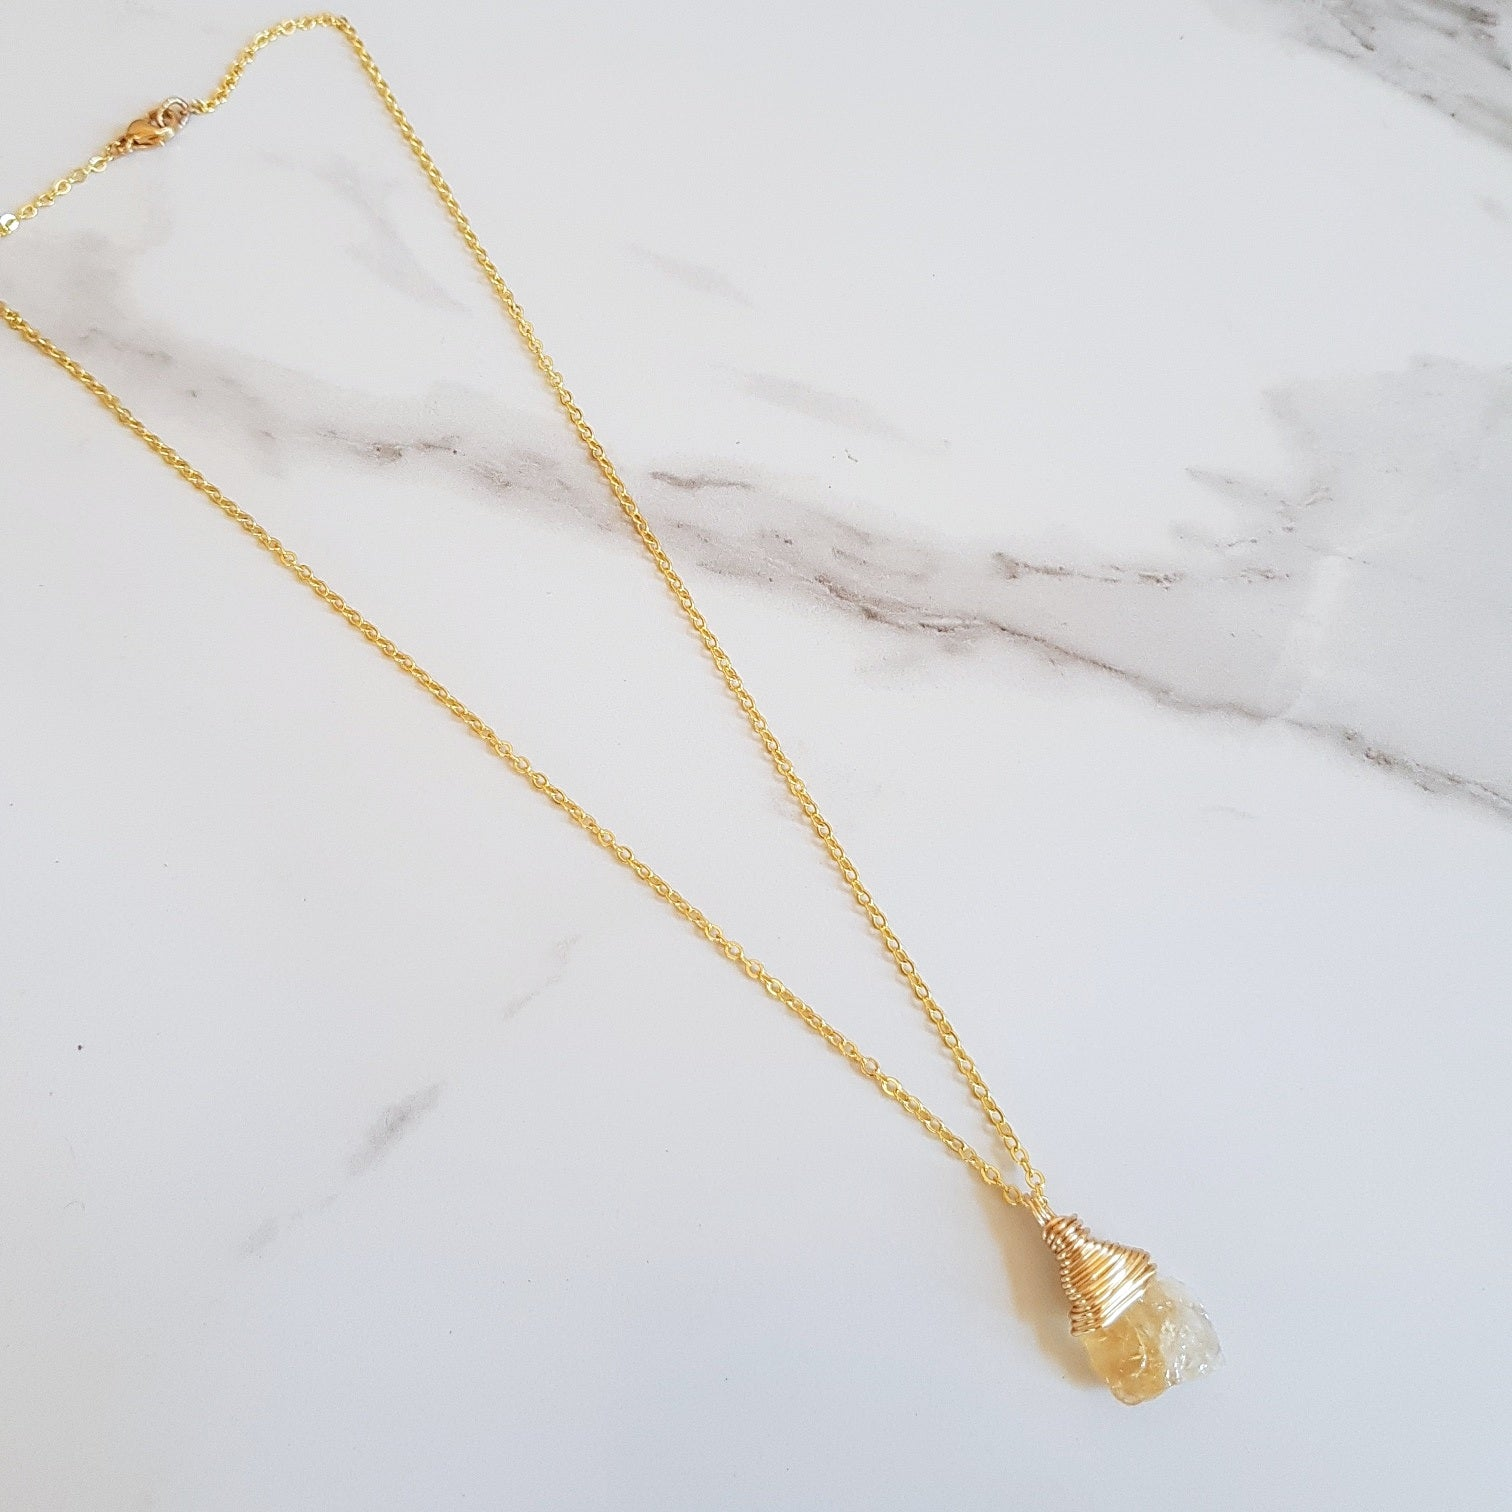 Haze Dainty Necklace - Citrine